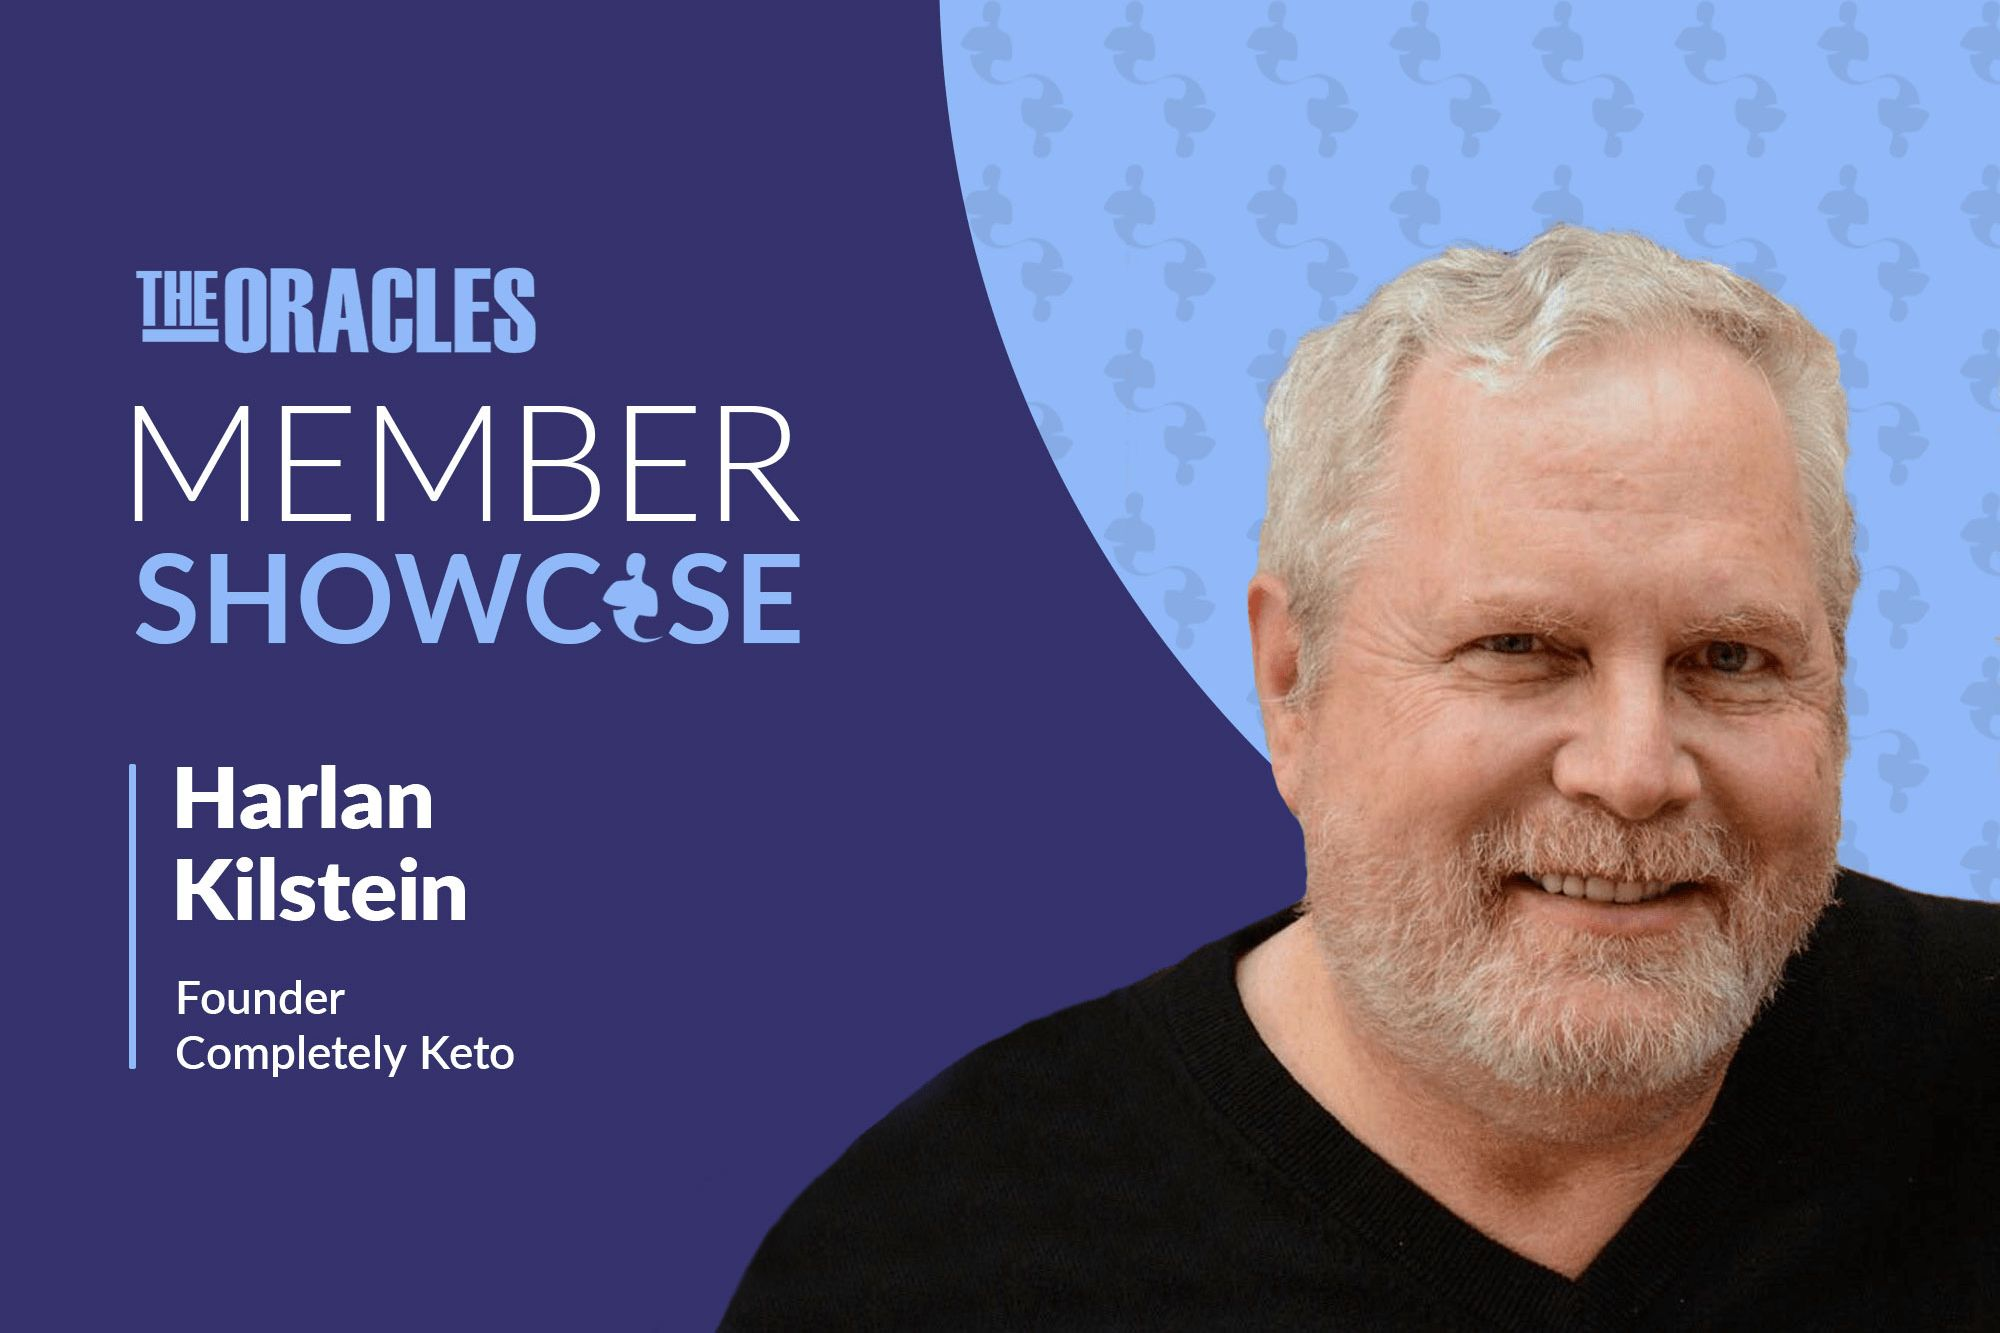 Keto Diet Evangelist Harlan Kilstein on How to Achieve Things You Never Thought Possible